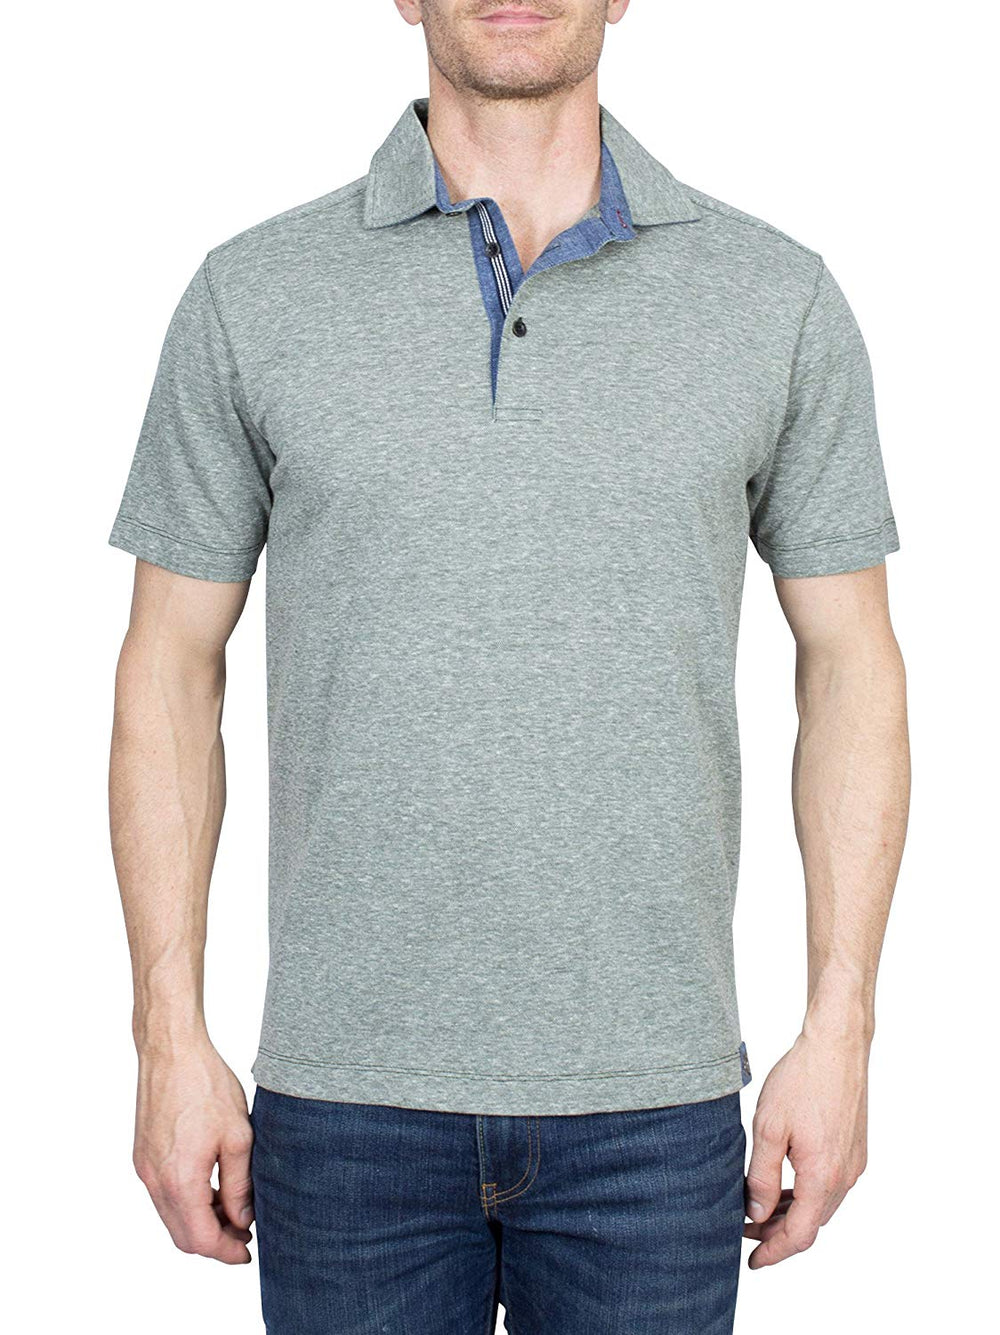 Thaddeus TYLER Men's Short Sleeve Heathered Cotton Blend Polo Shirt